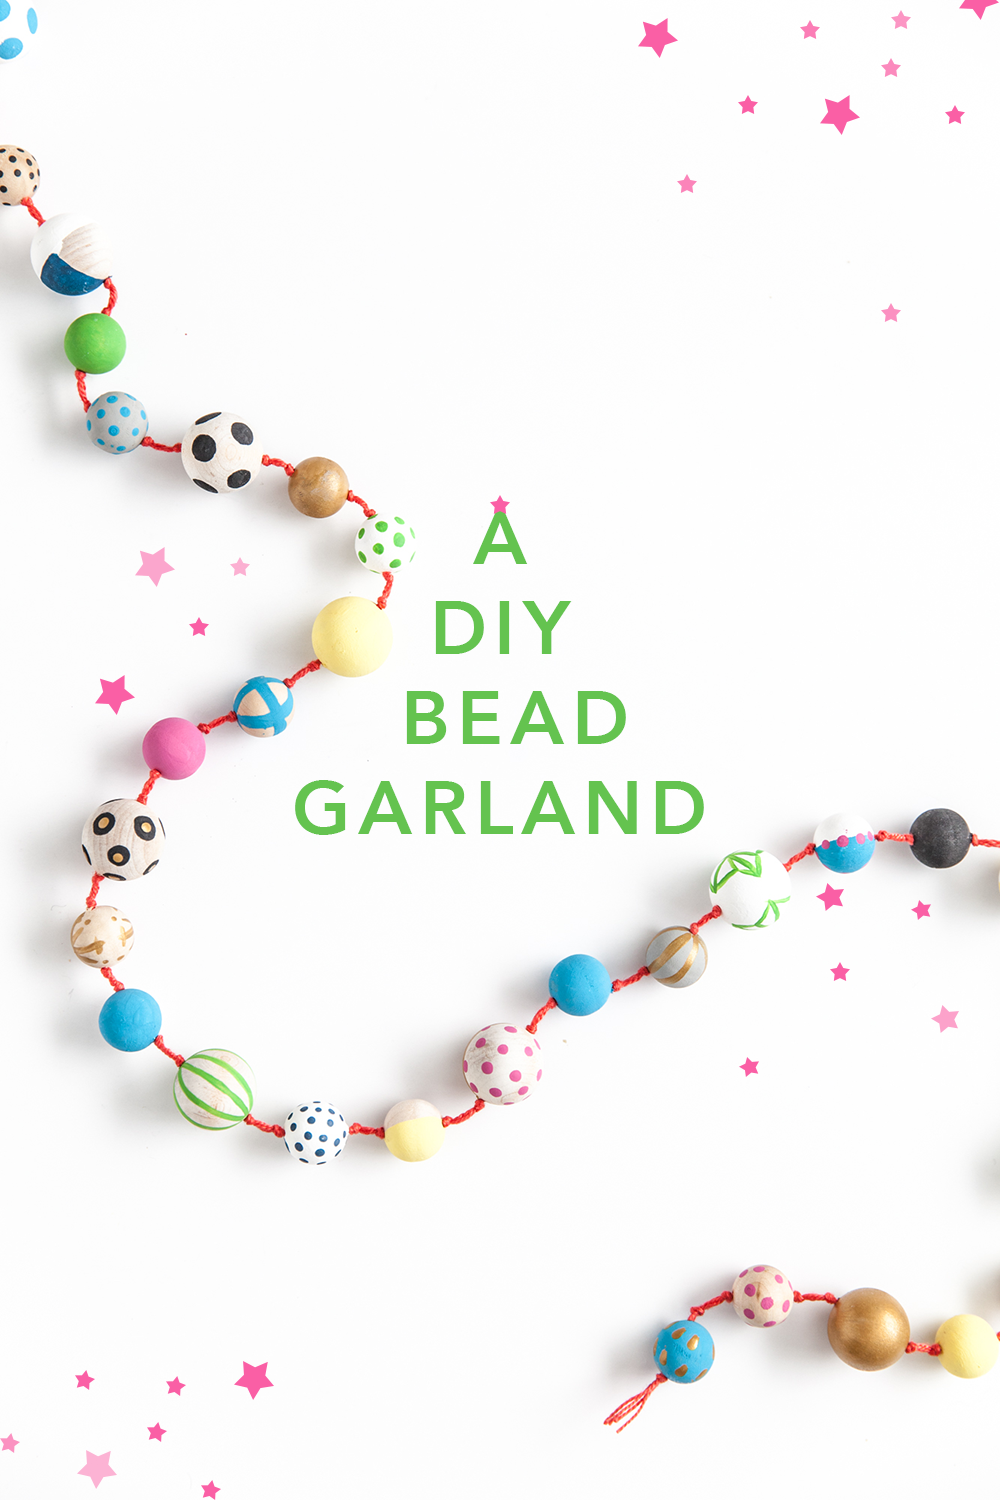 DIY_painted_wood_bead_garland_25